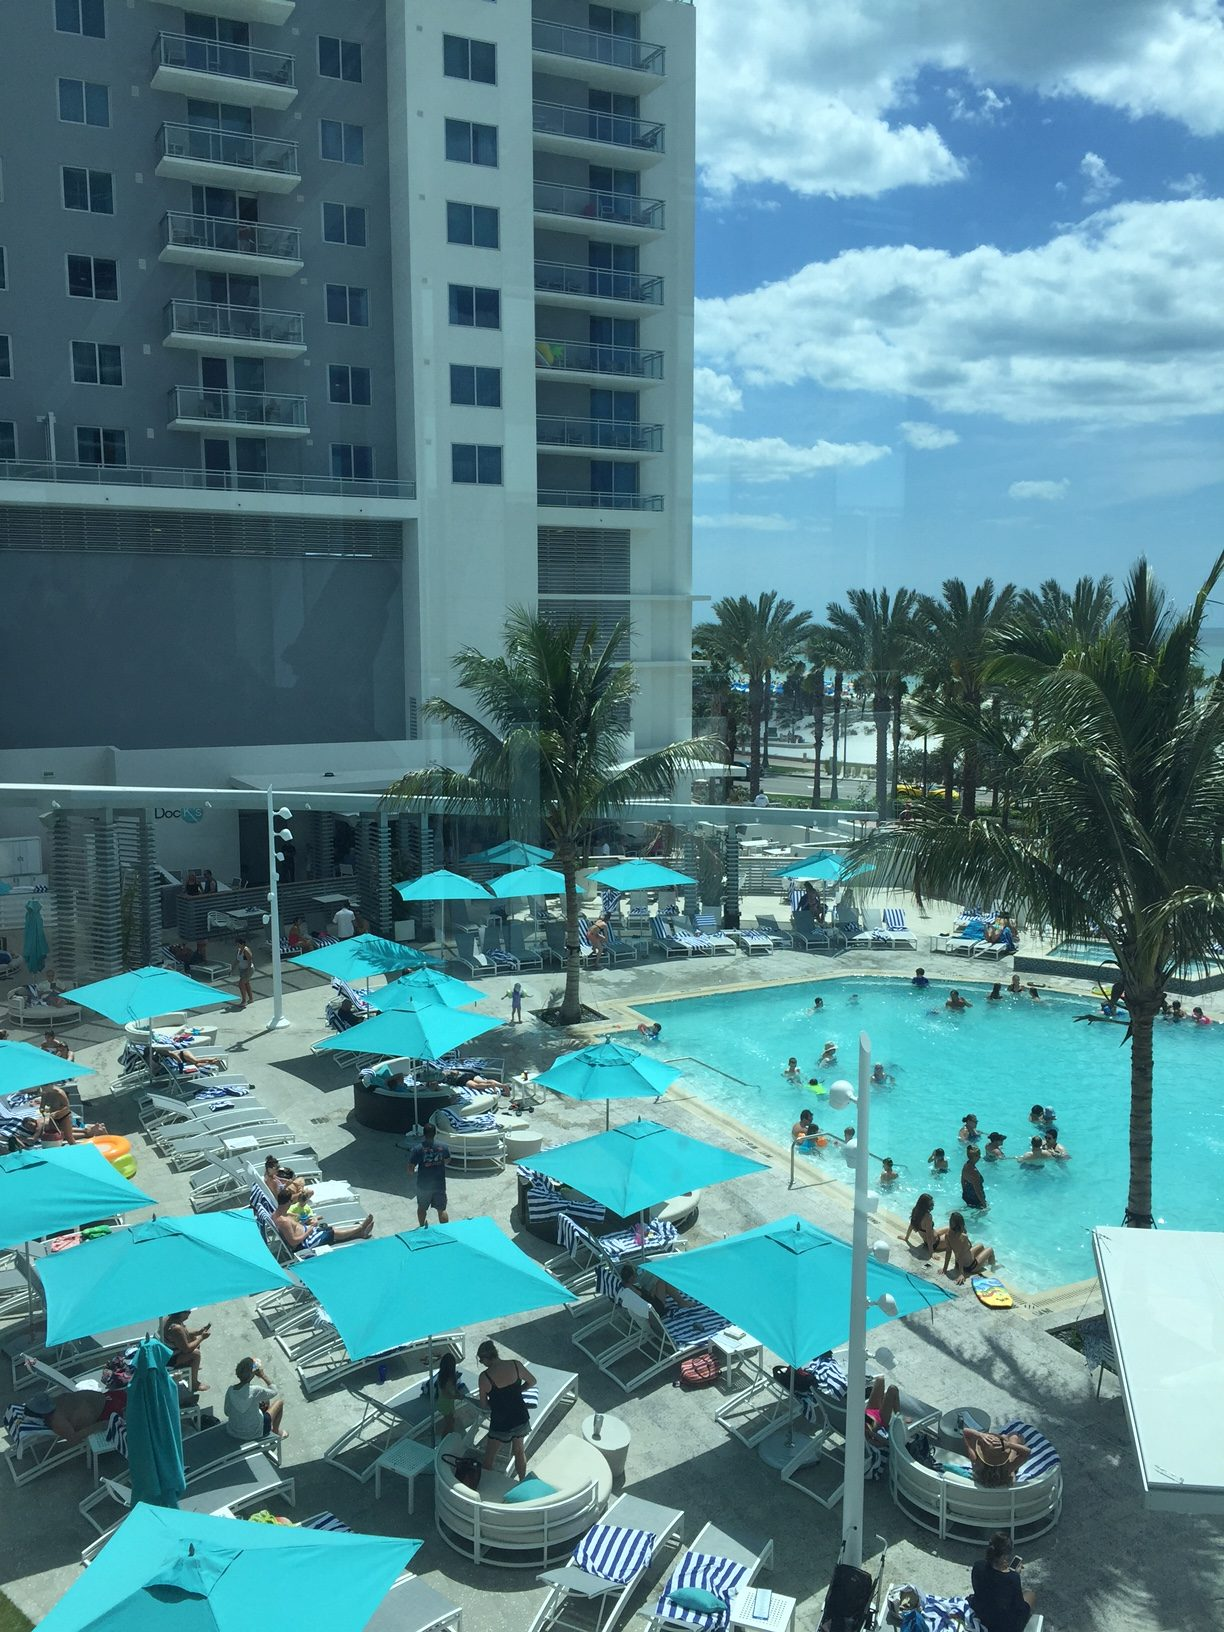 Wyndham Clearwater Pool  A Boomers Life After 50A Boomers